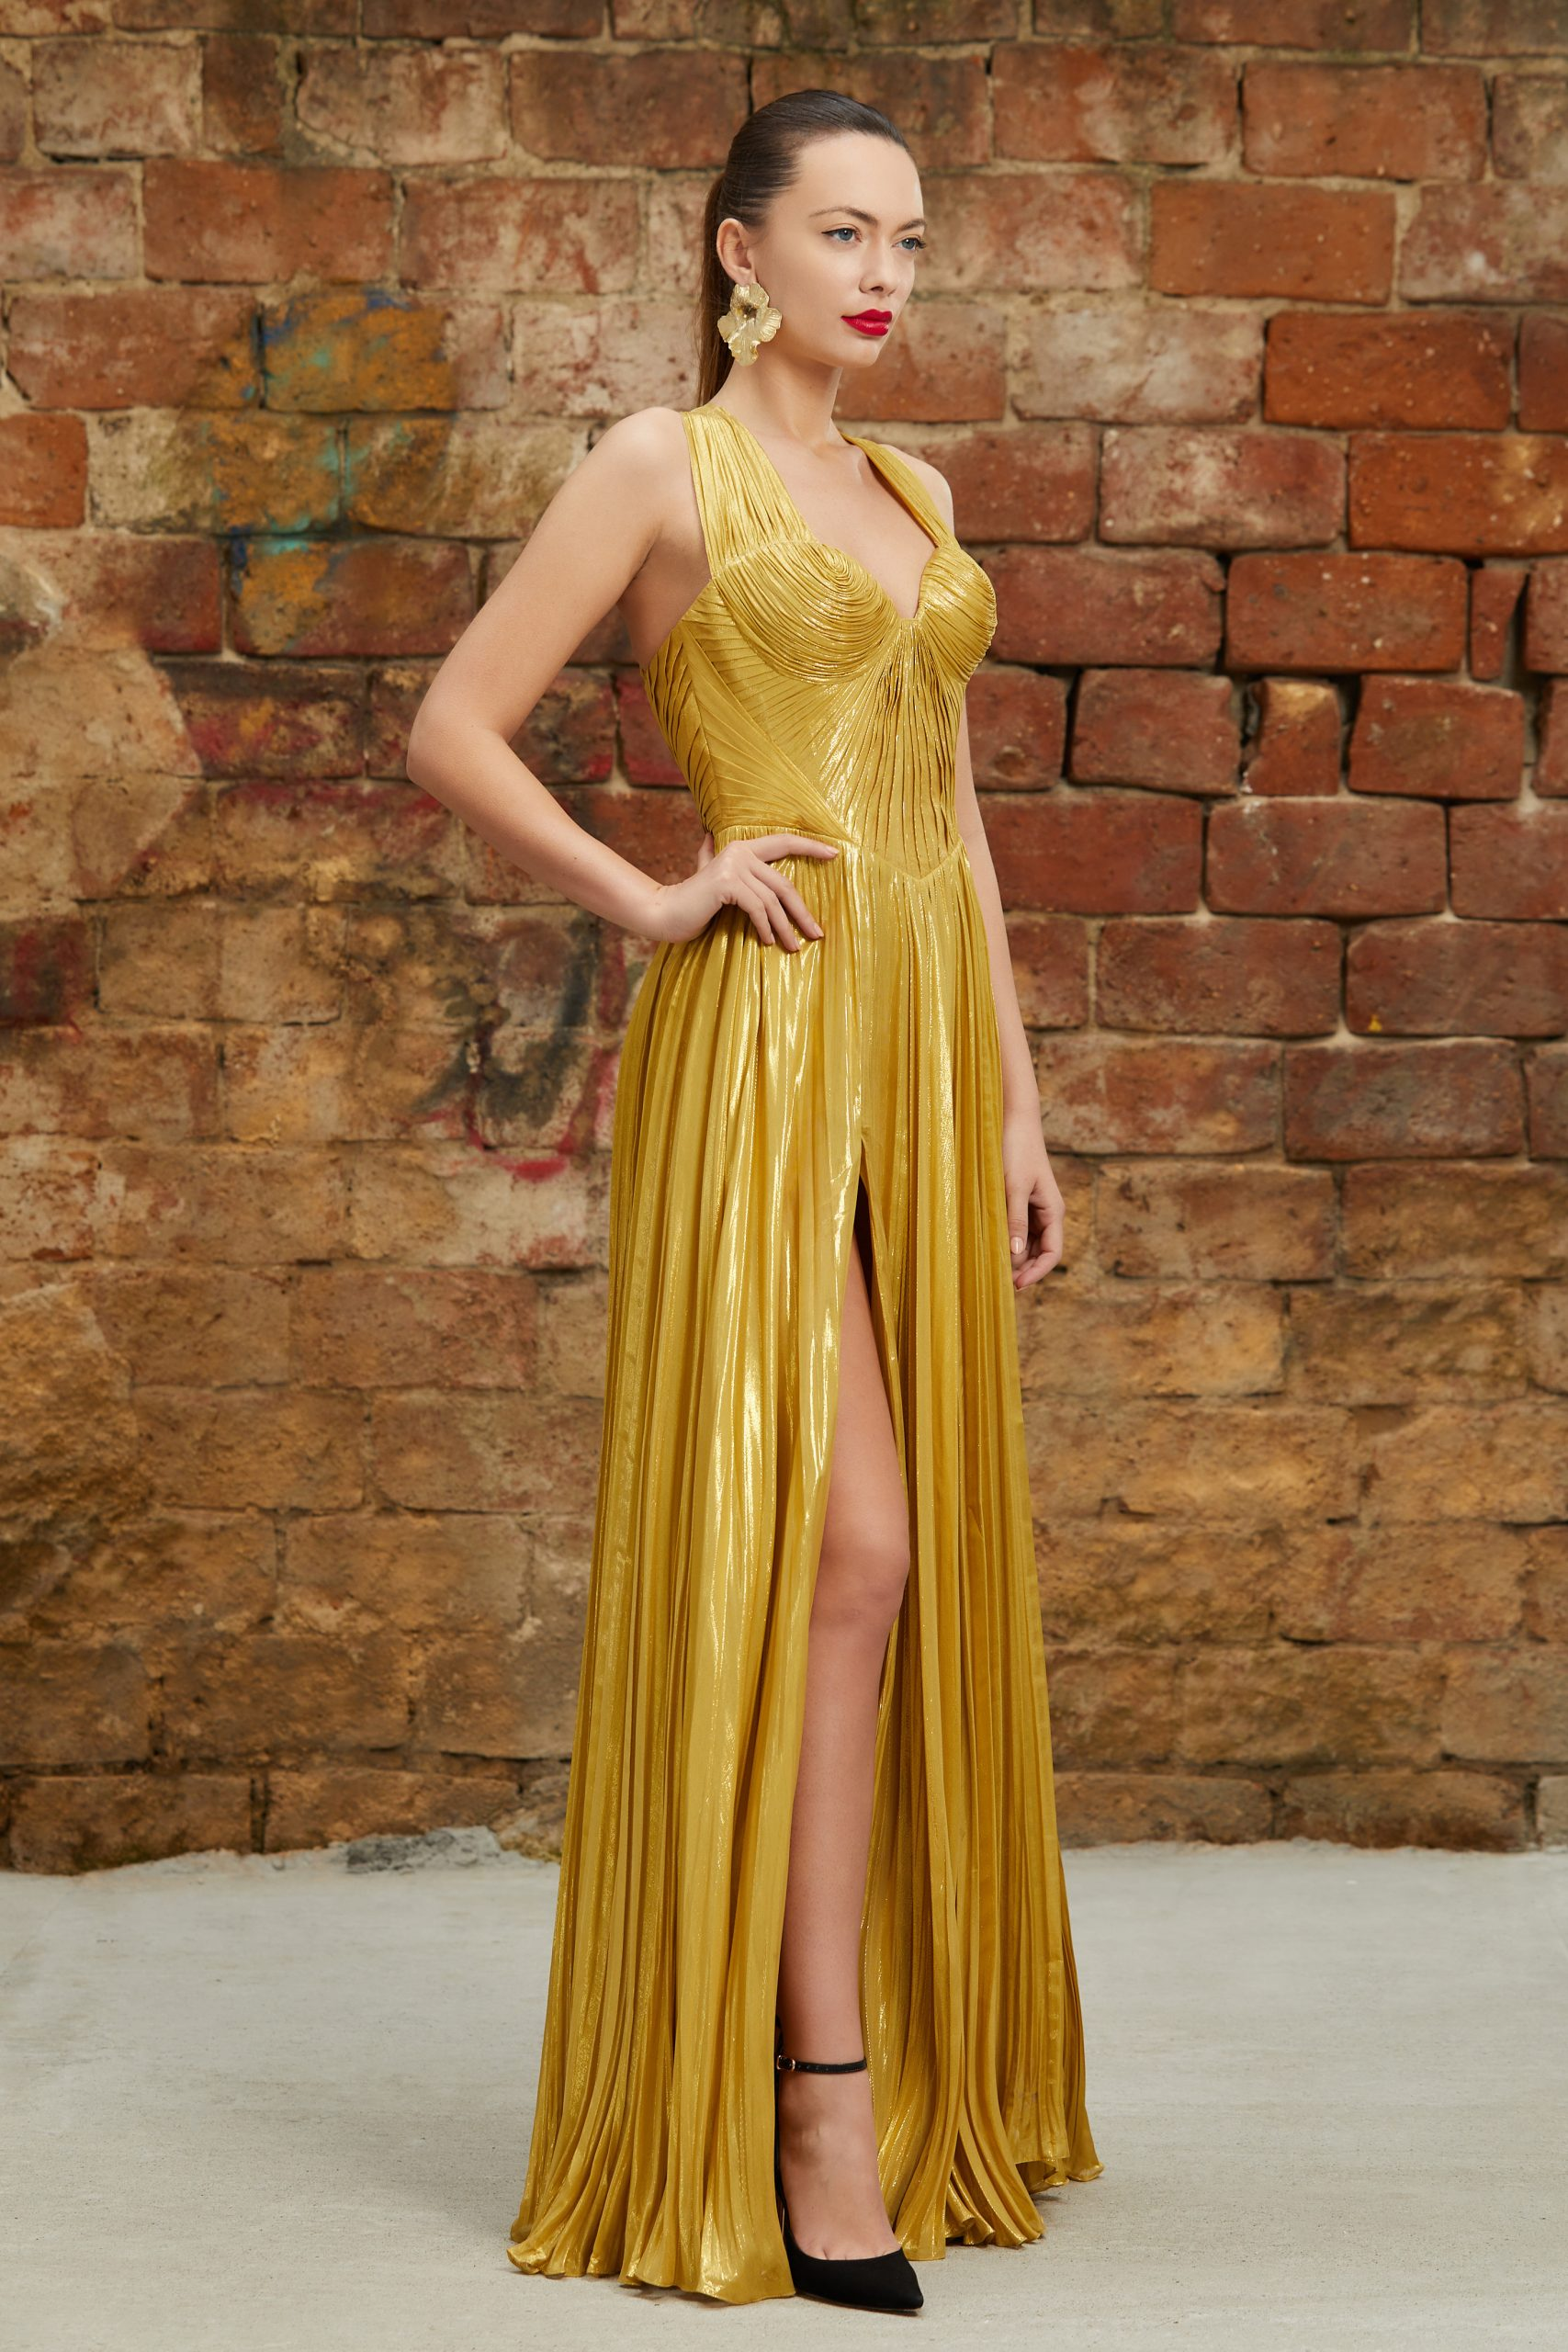 Golden silk evening dress